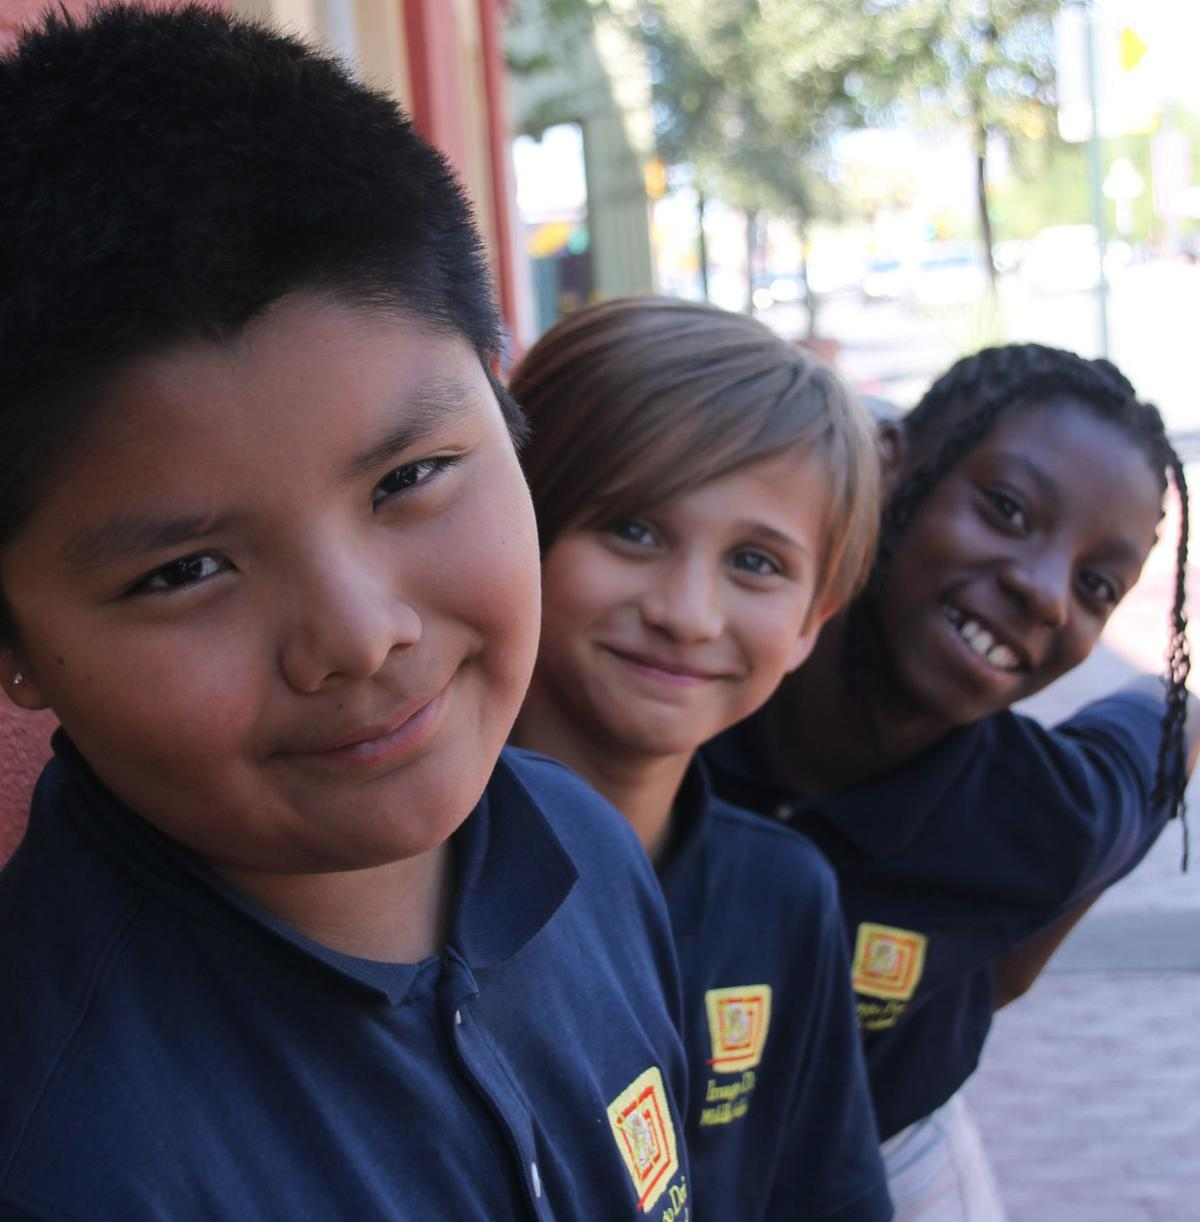 Arizona Tax Credits: Imago Dei Middle School